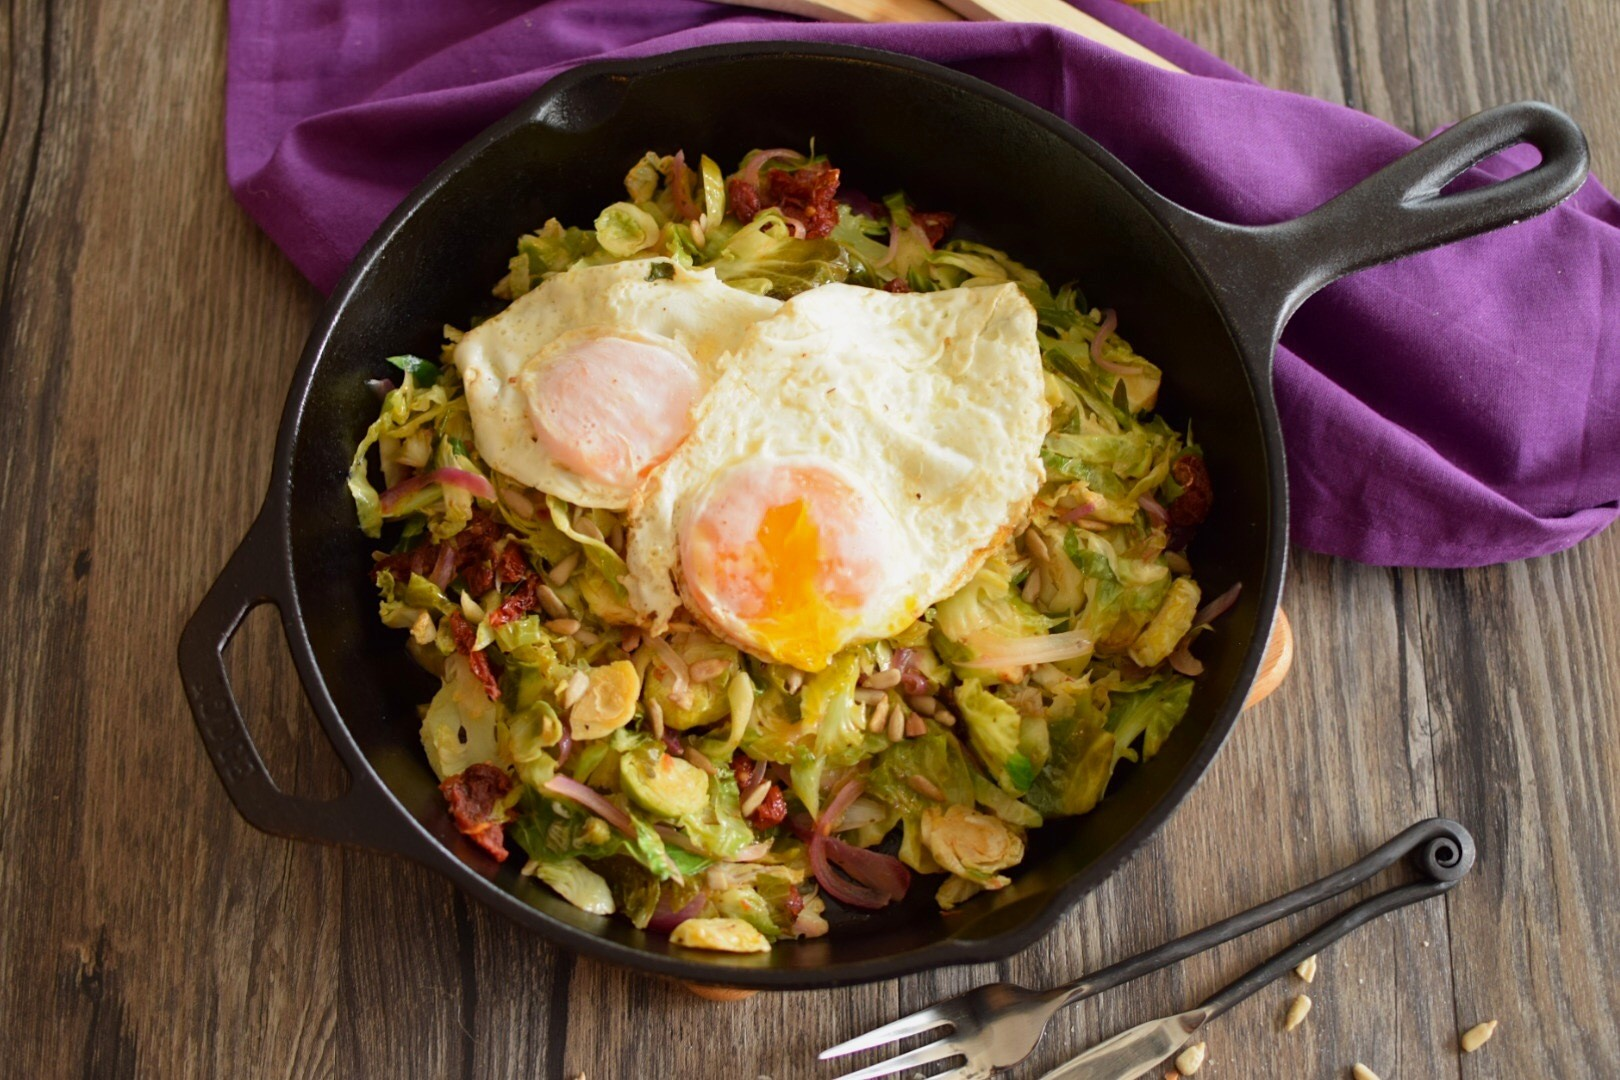 Eggs over Easy with Shredded Brussels Sprouts